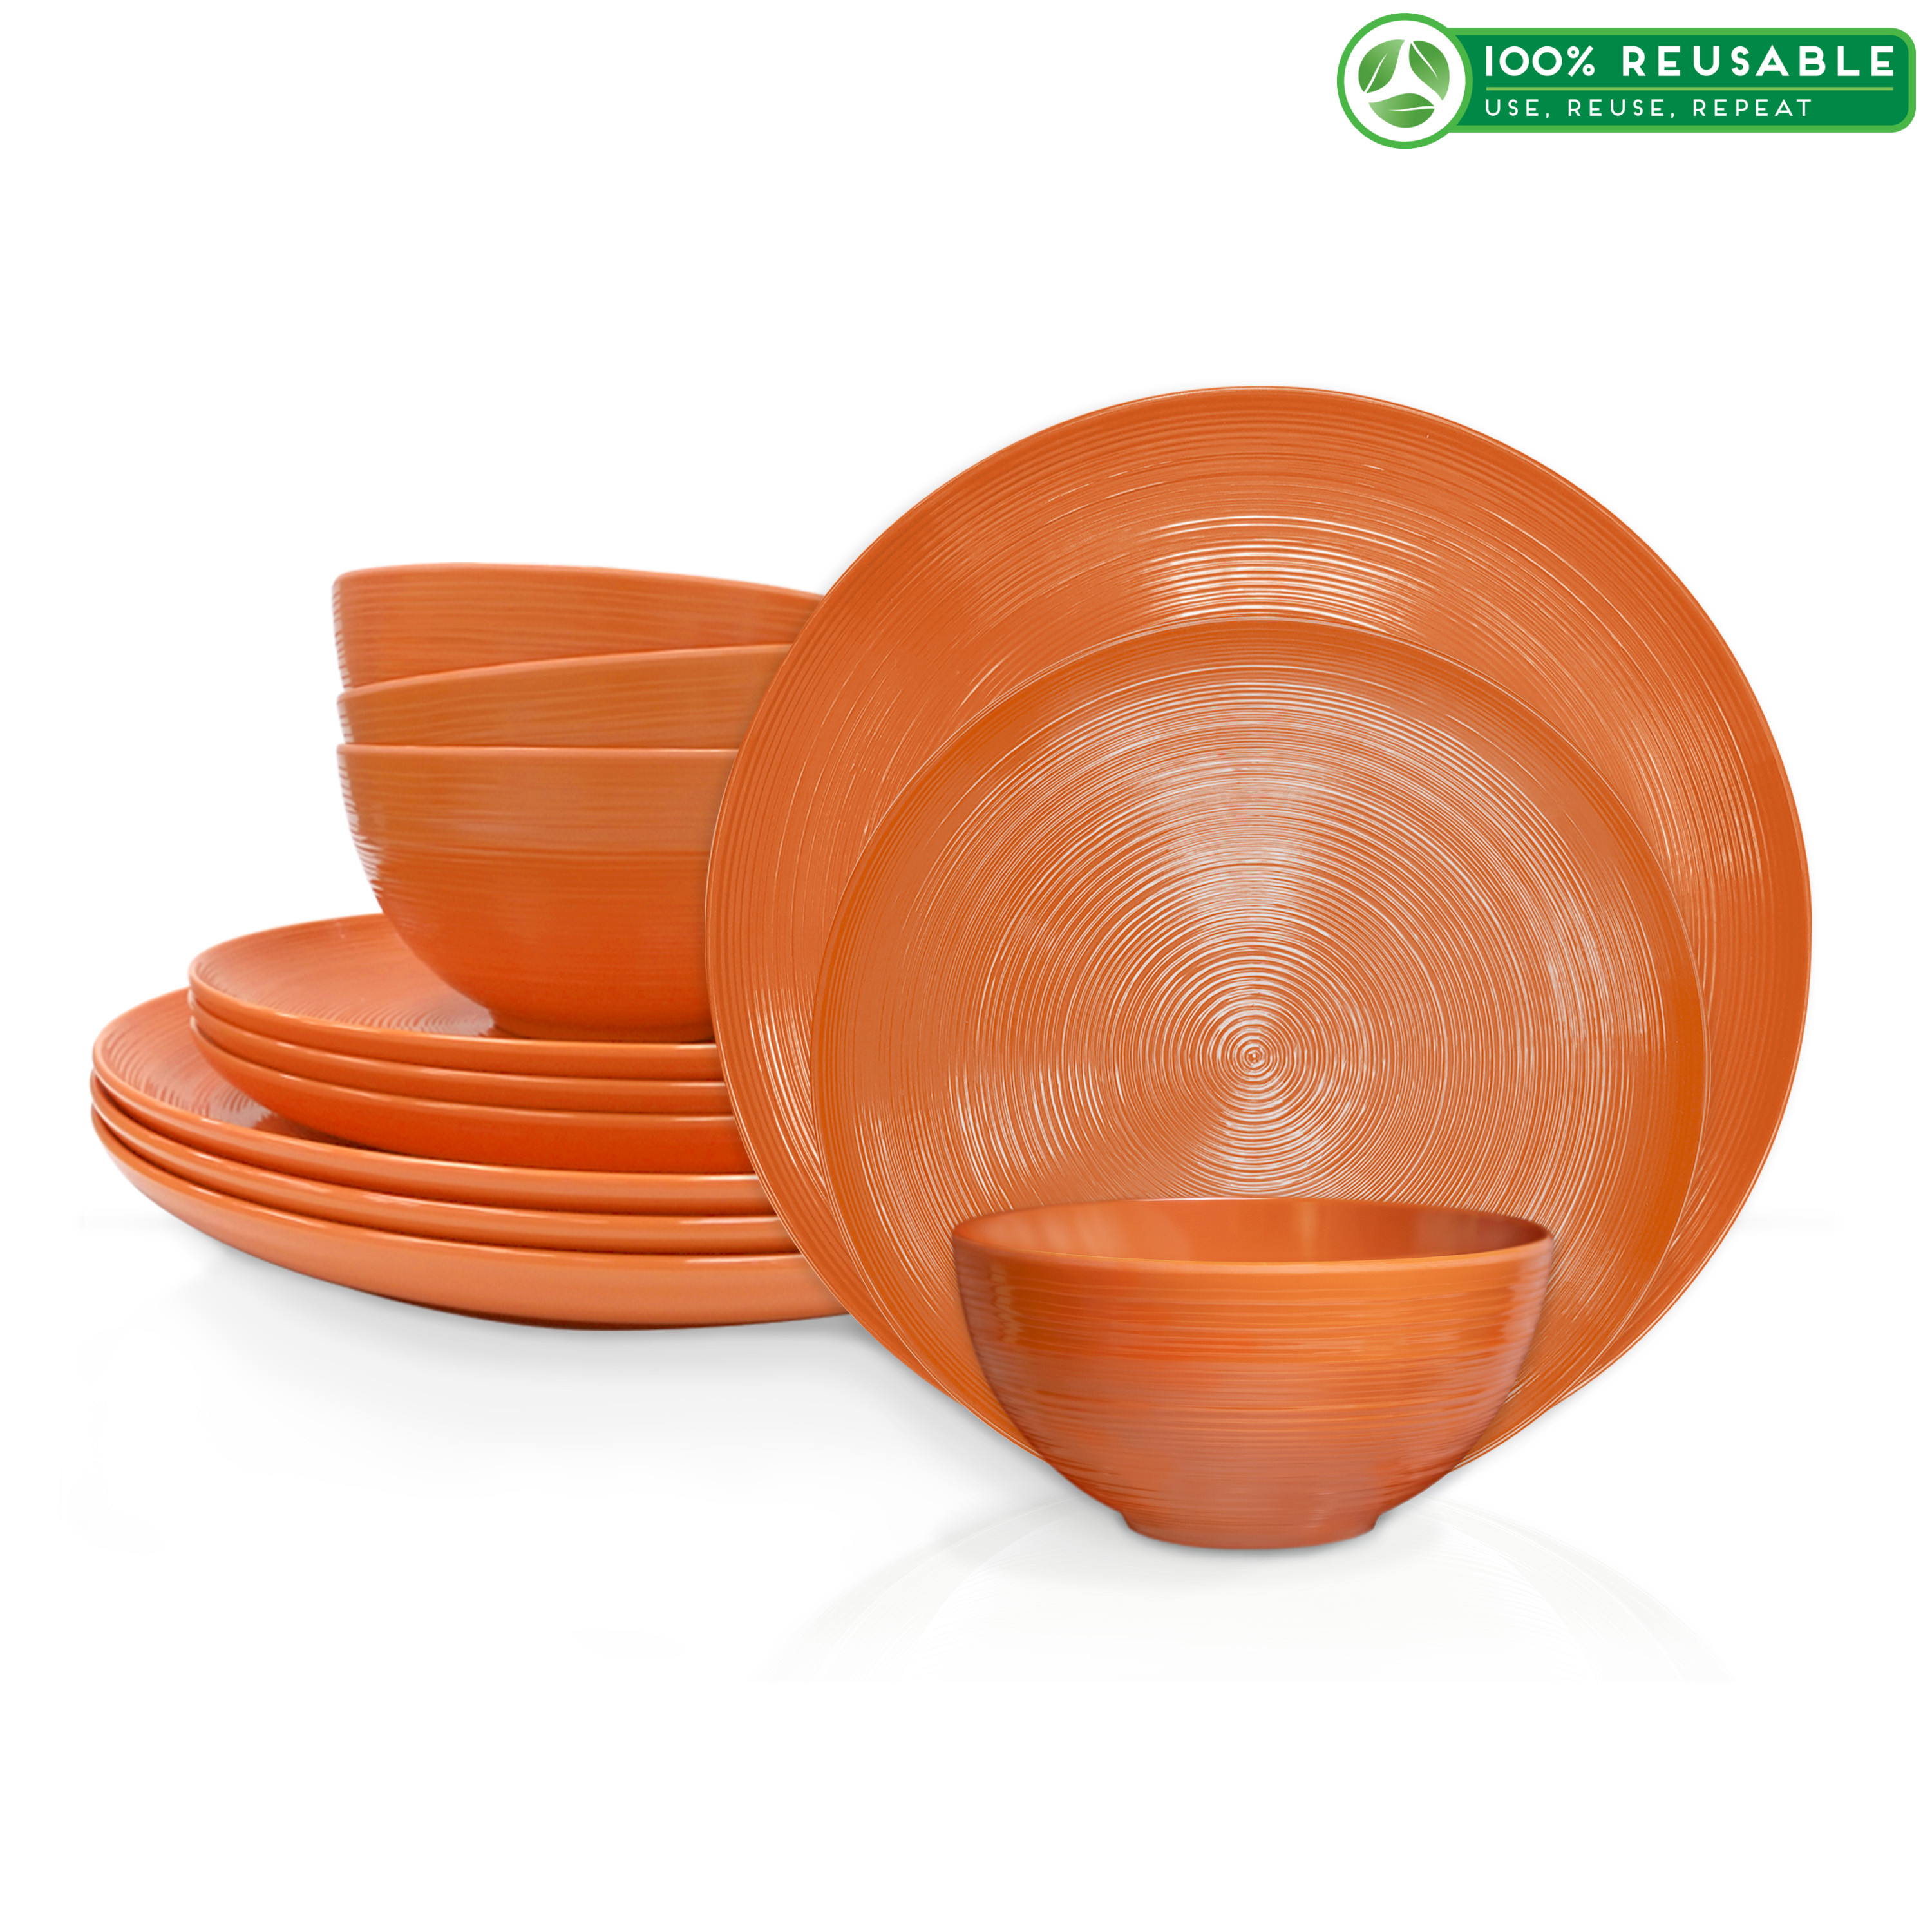 American Conventional Plate & Bowl Sets, Orange, 12-piece set slideshow image 1